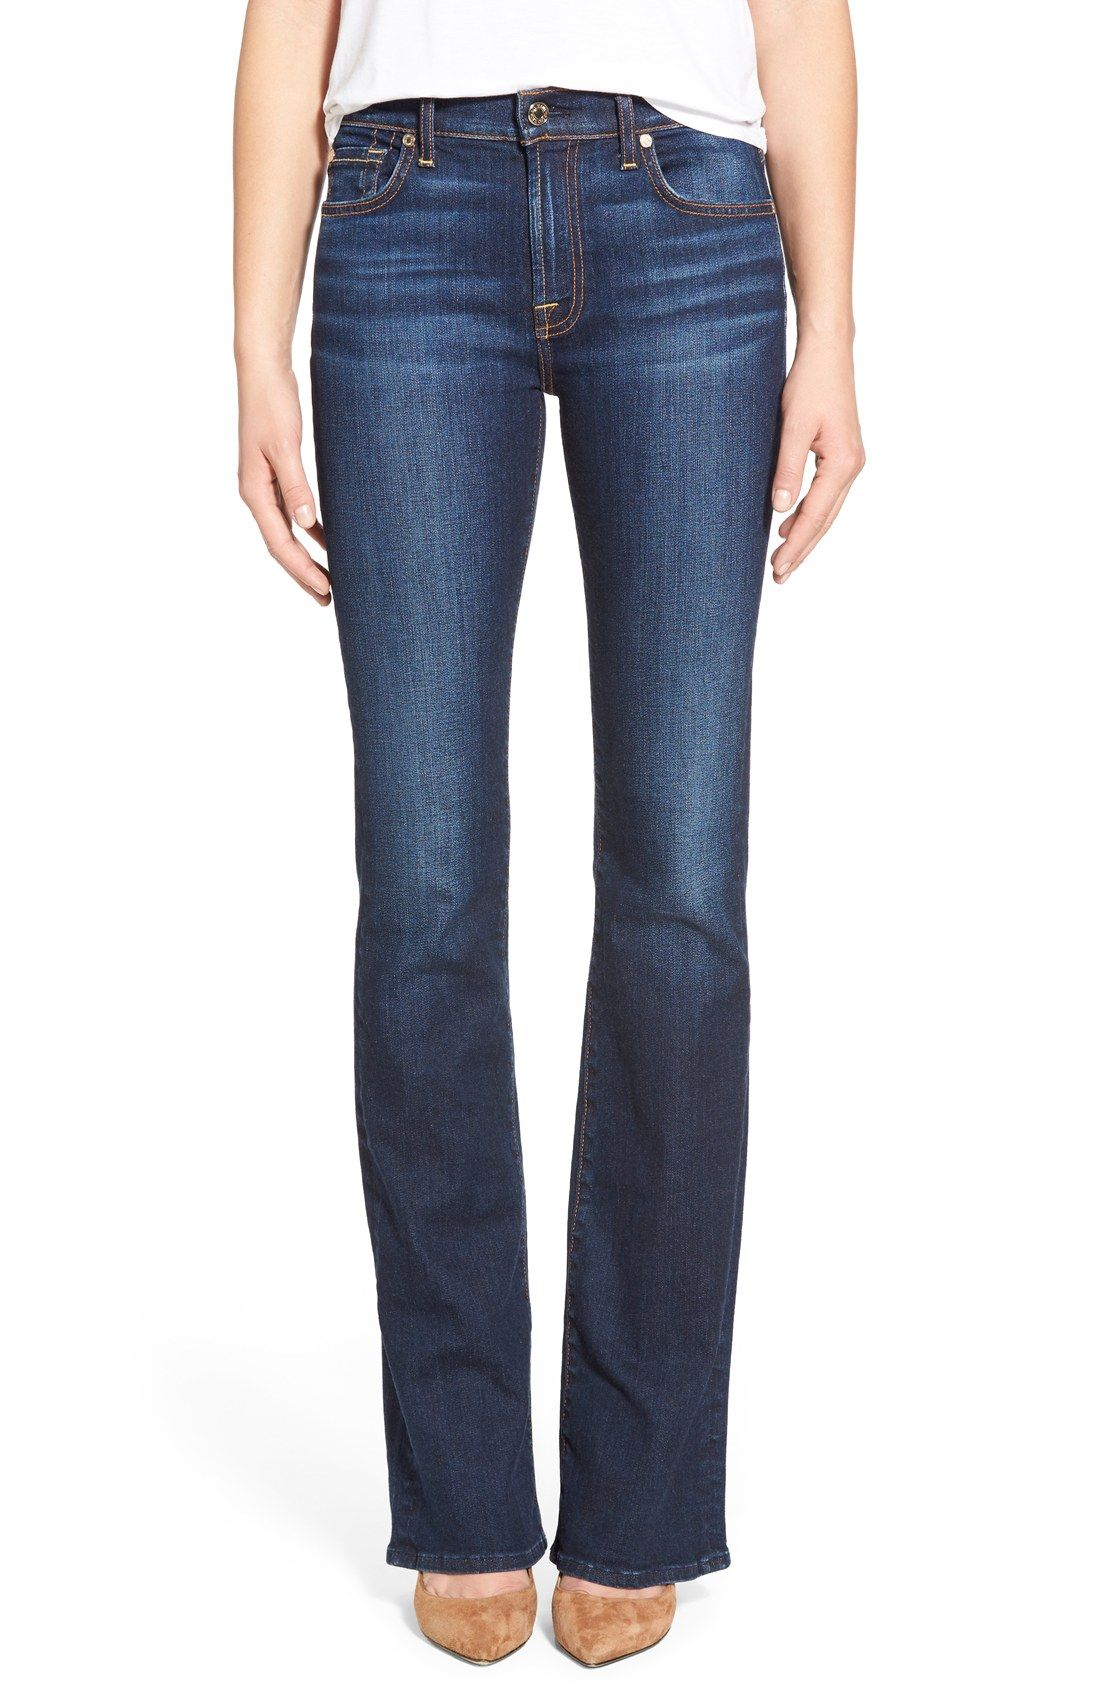 7 For All Mankind® 'Tailorless' Bootcut Jeans (New York Dark) (